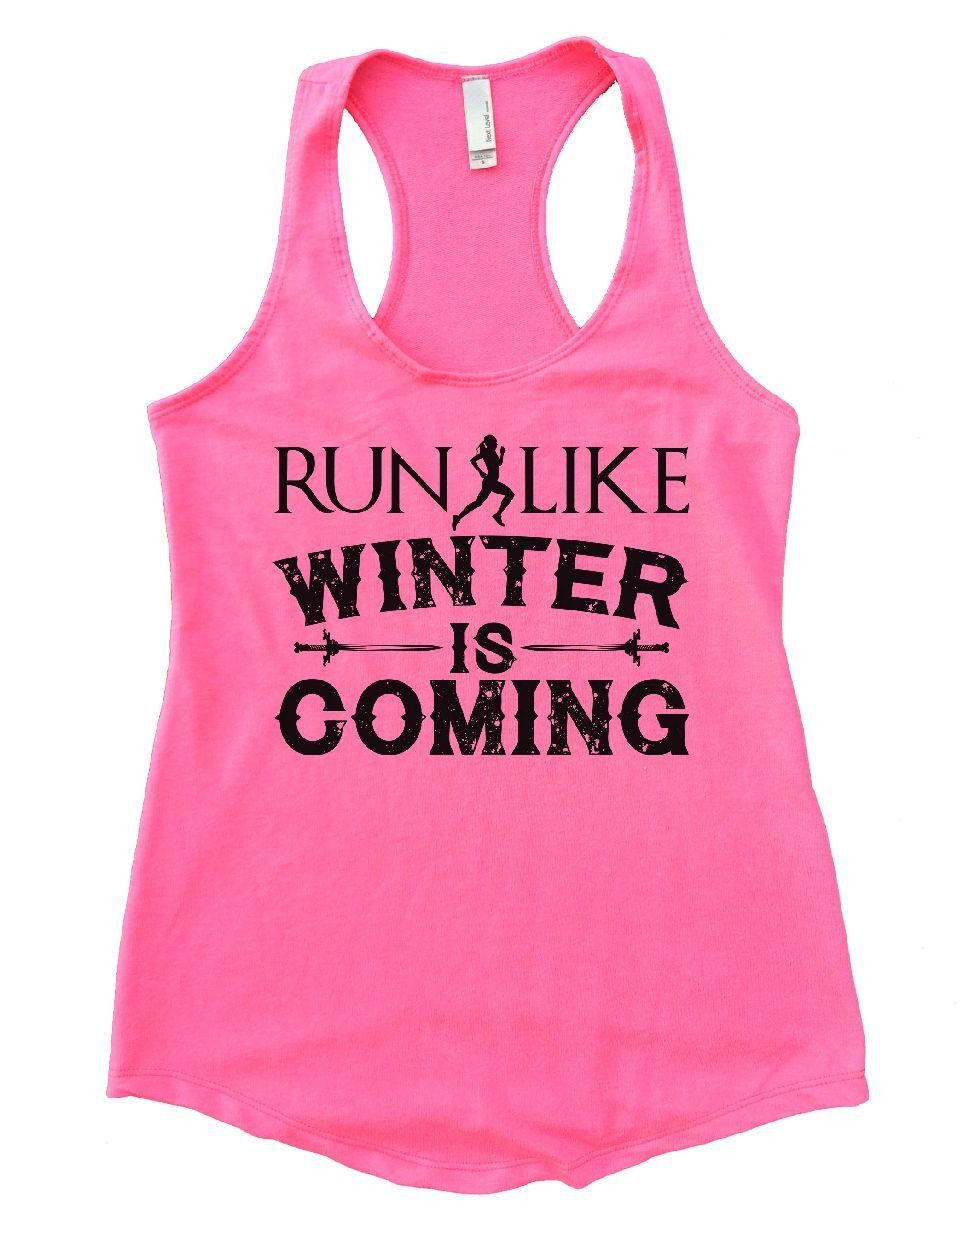 Run like winter is coming womens workout tank top woman workout